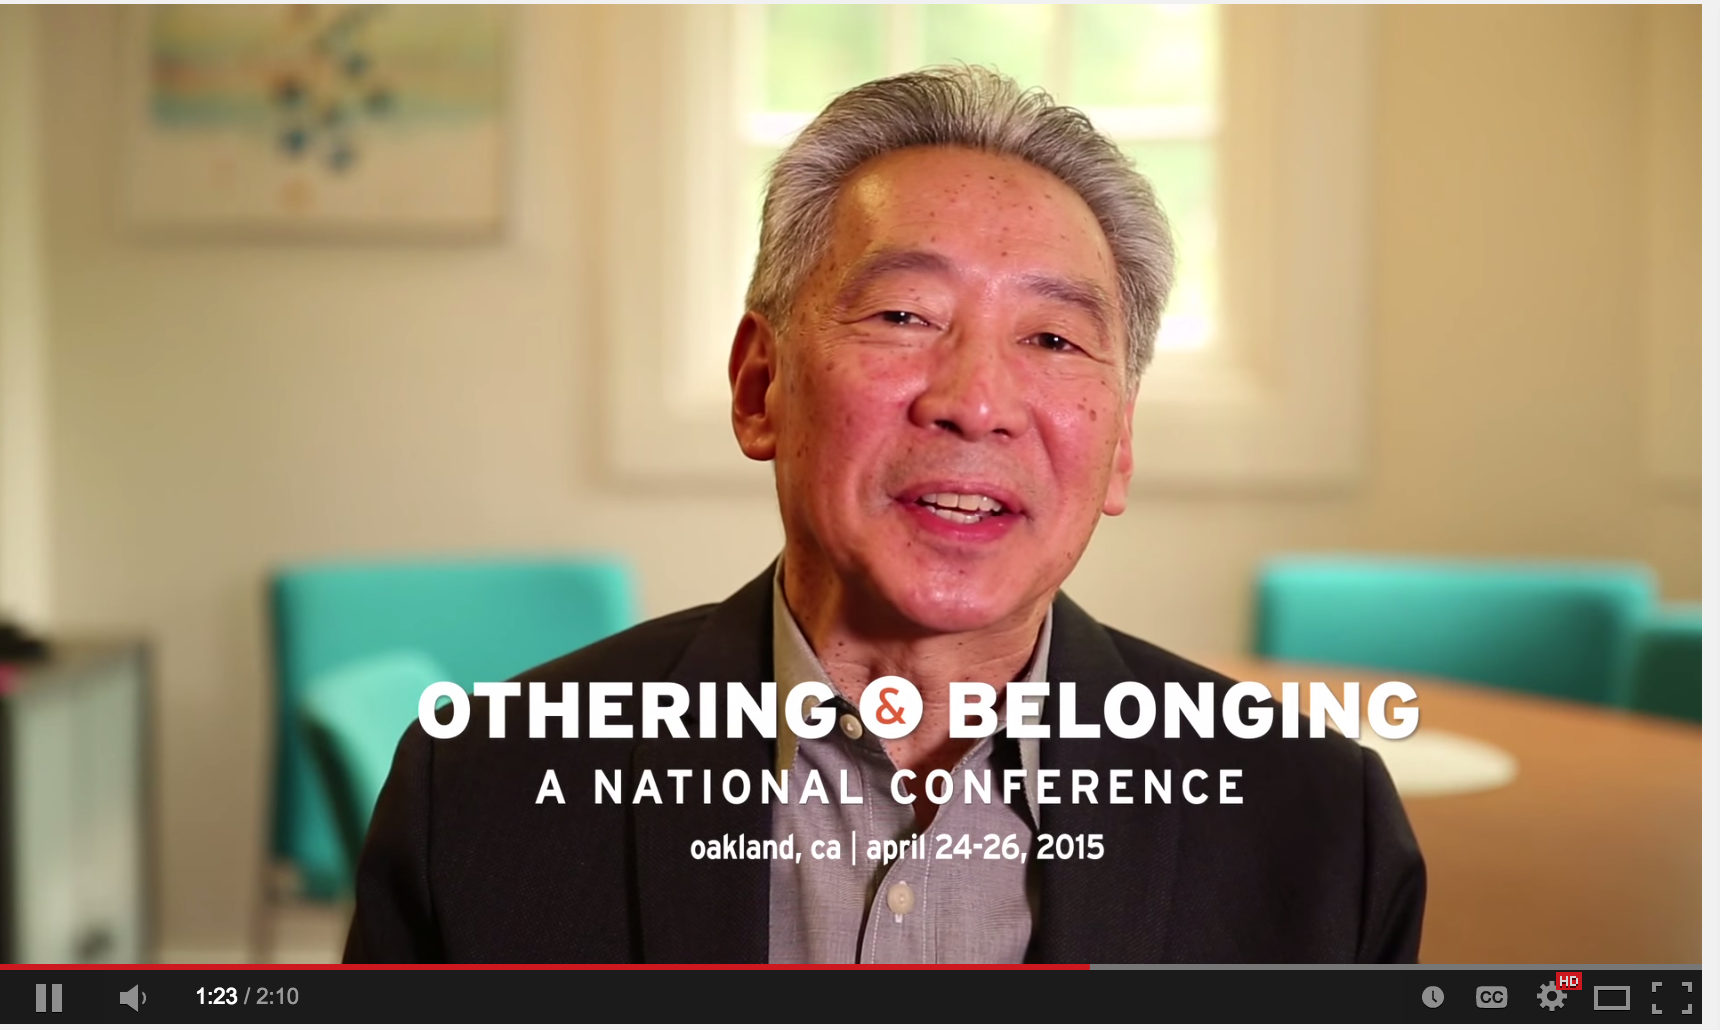 Othering & Belonging Conference